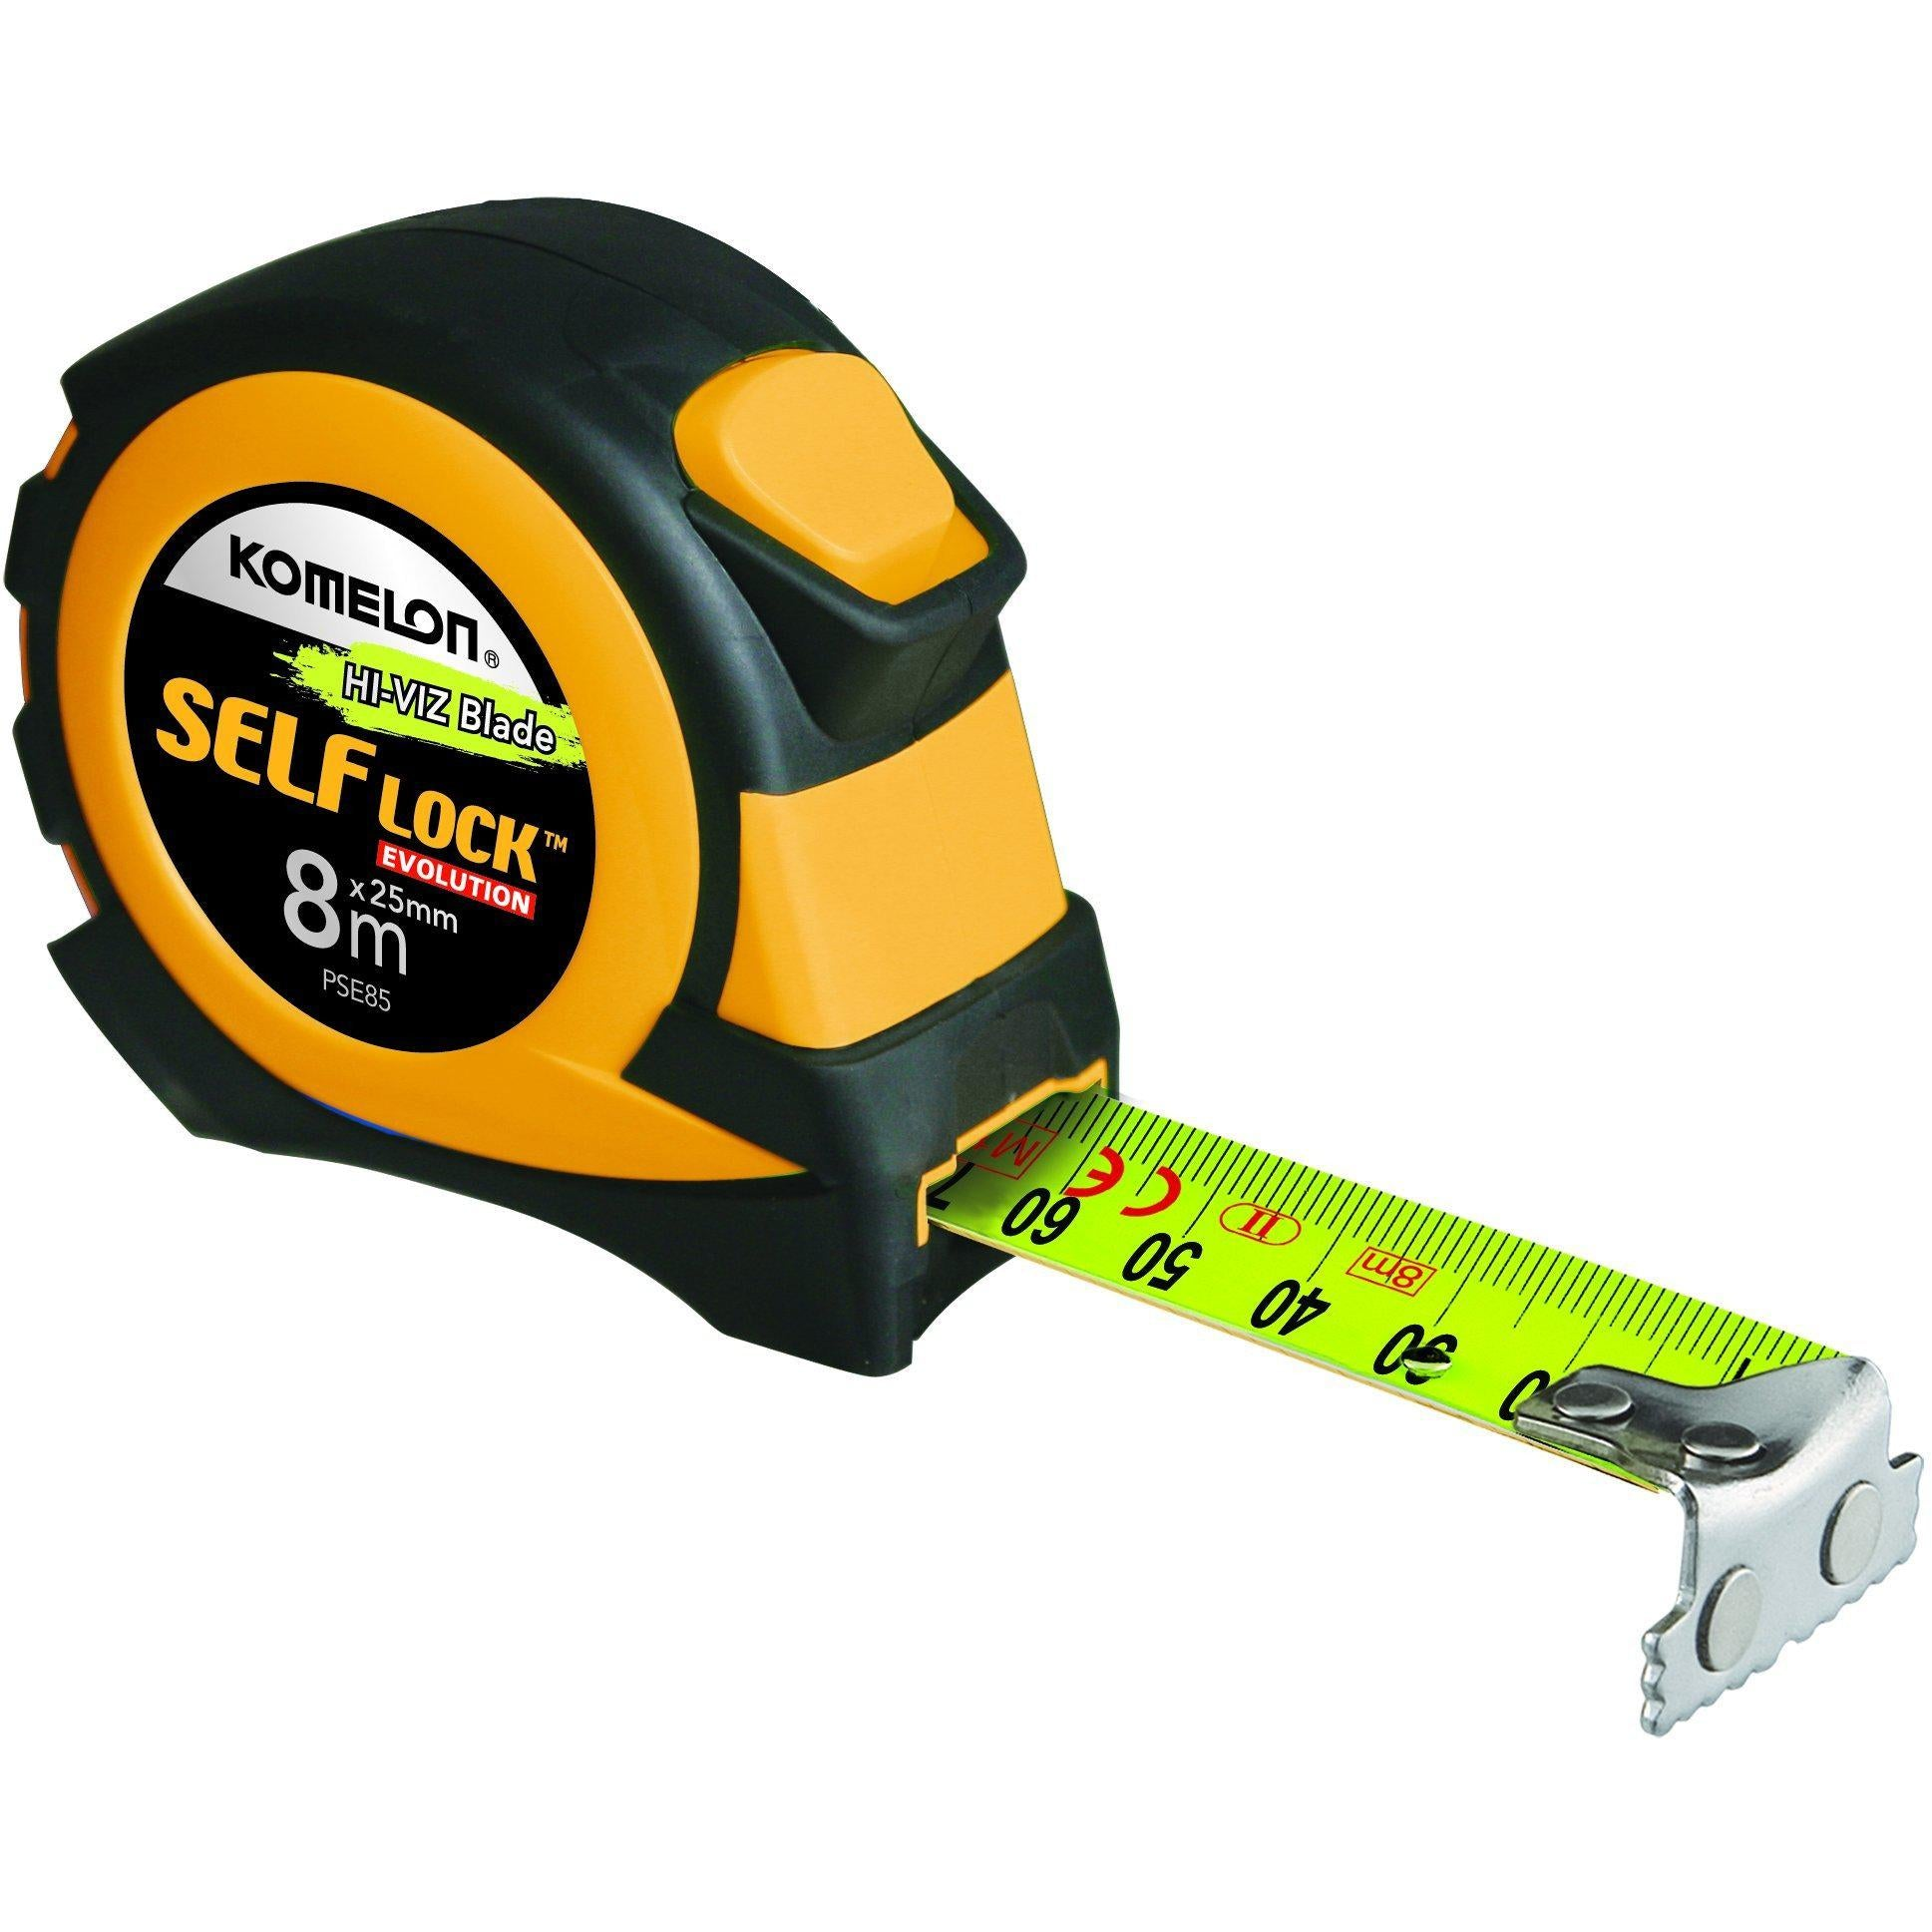 KOMELON Full Auto Self Lock High Viz 8mx25mm Tape-Tape Measure-Komelon-Herbos Equipment Limited